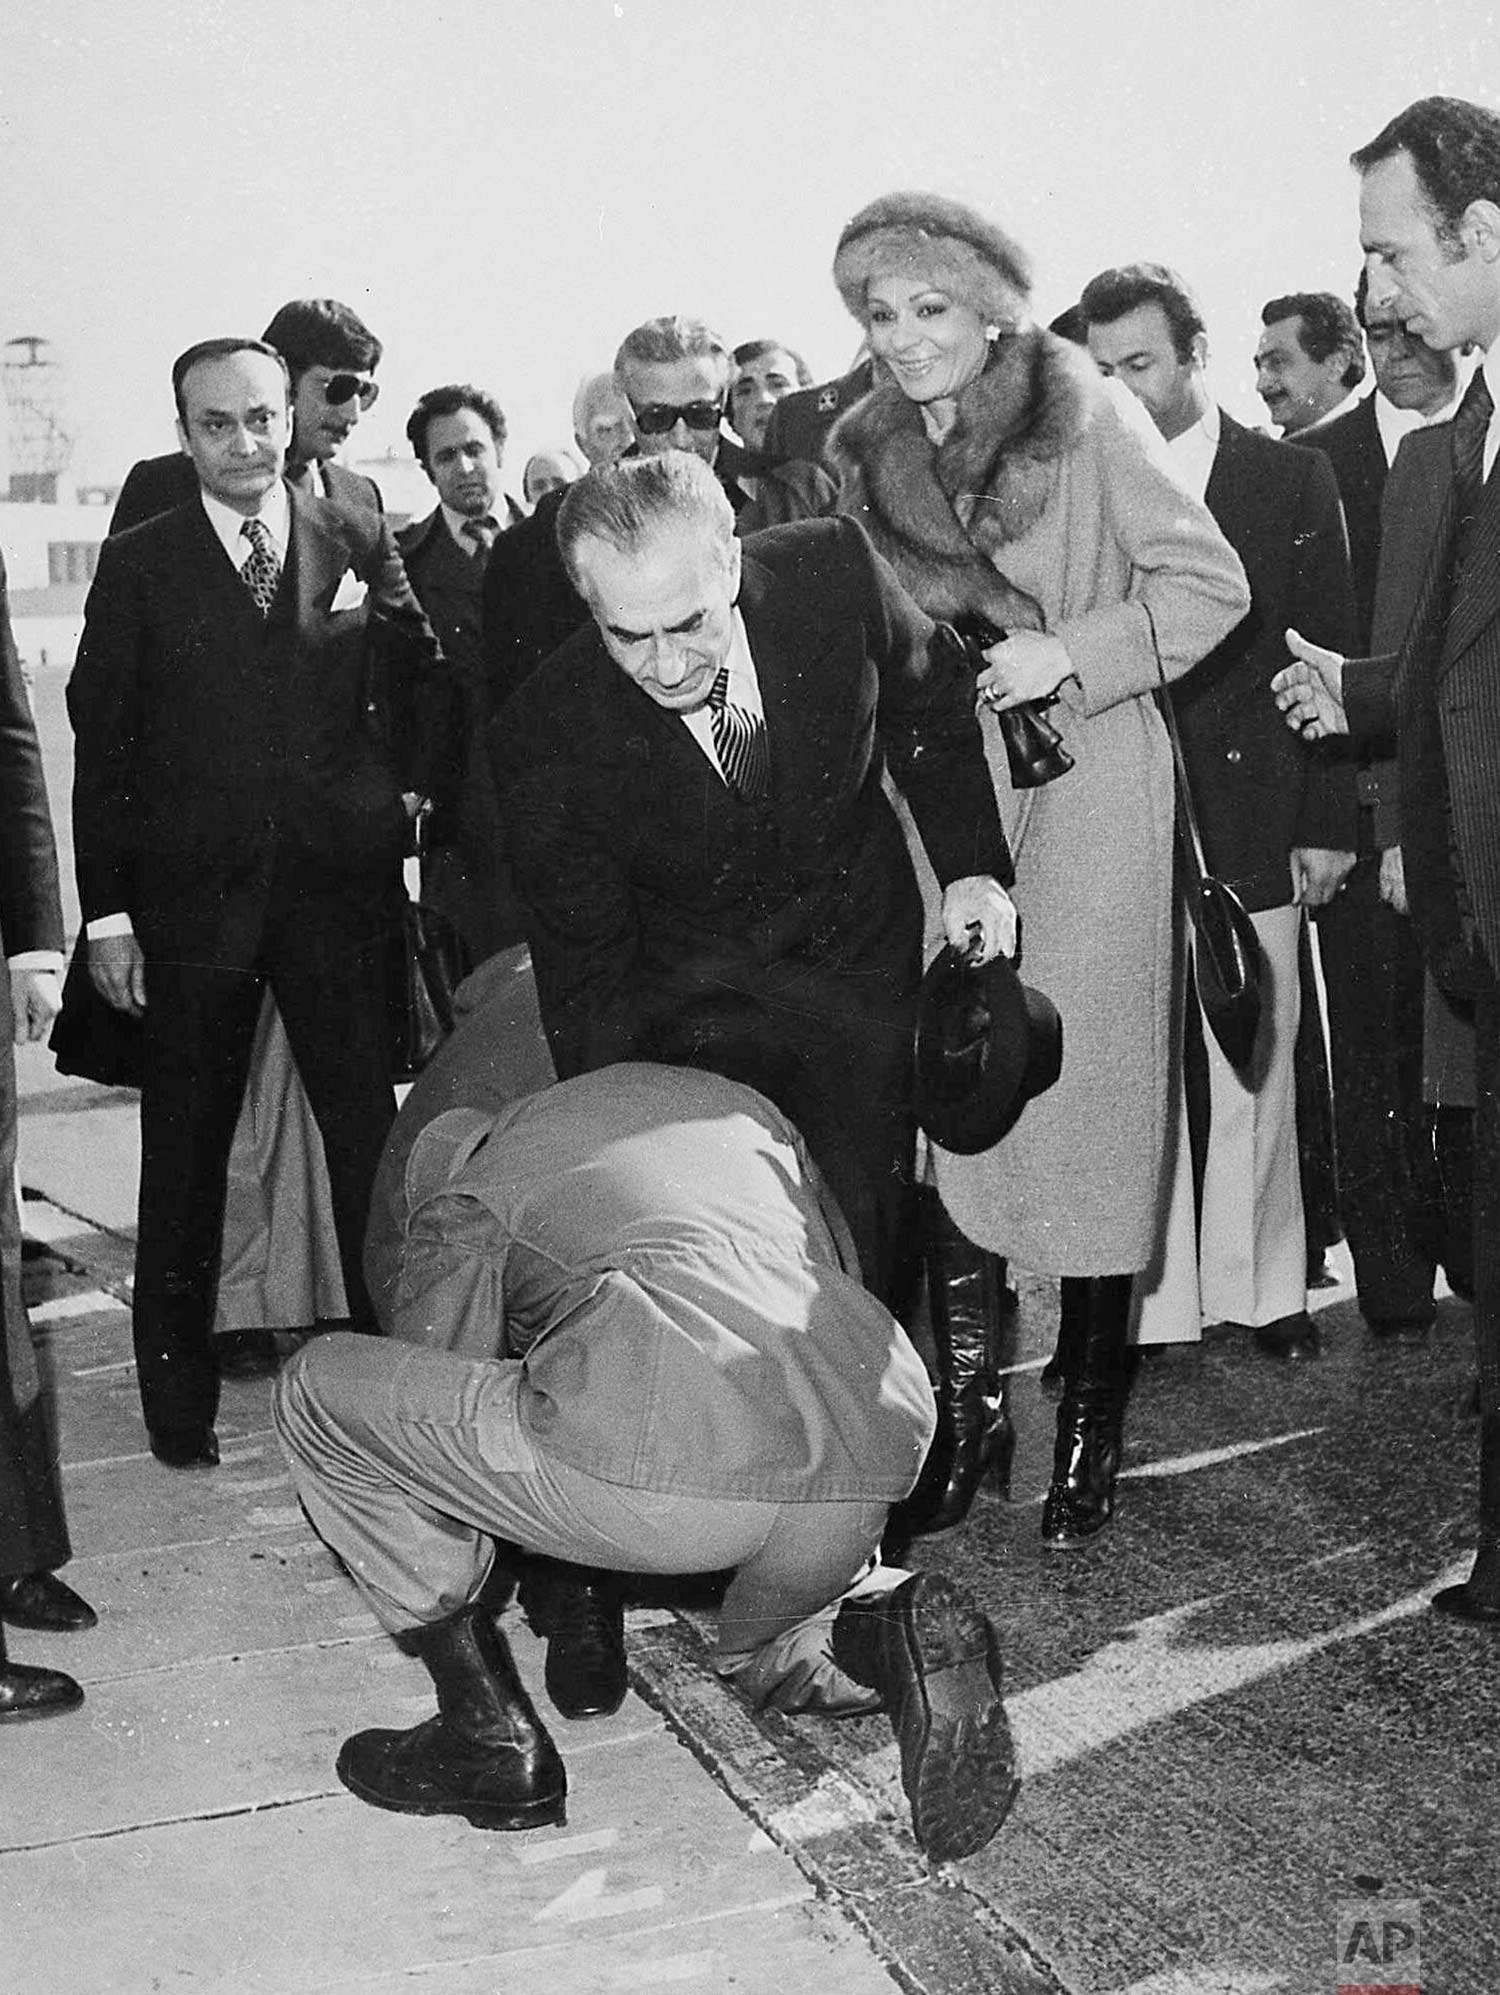 In this Jan. 16, 1979 photo, a soldier bends to kiss the feet of Iran's Shah Mohammad Reza Pahlavi on the tarmac of Mehrabad Airport in Tehran, Iran. Behind the shah is his wife, Empress Farah. (AP Photo)